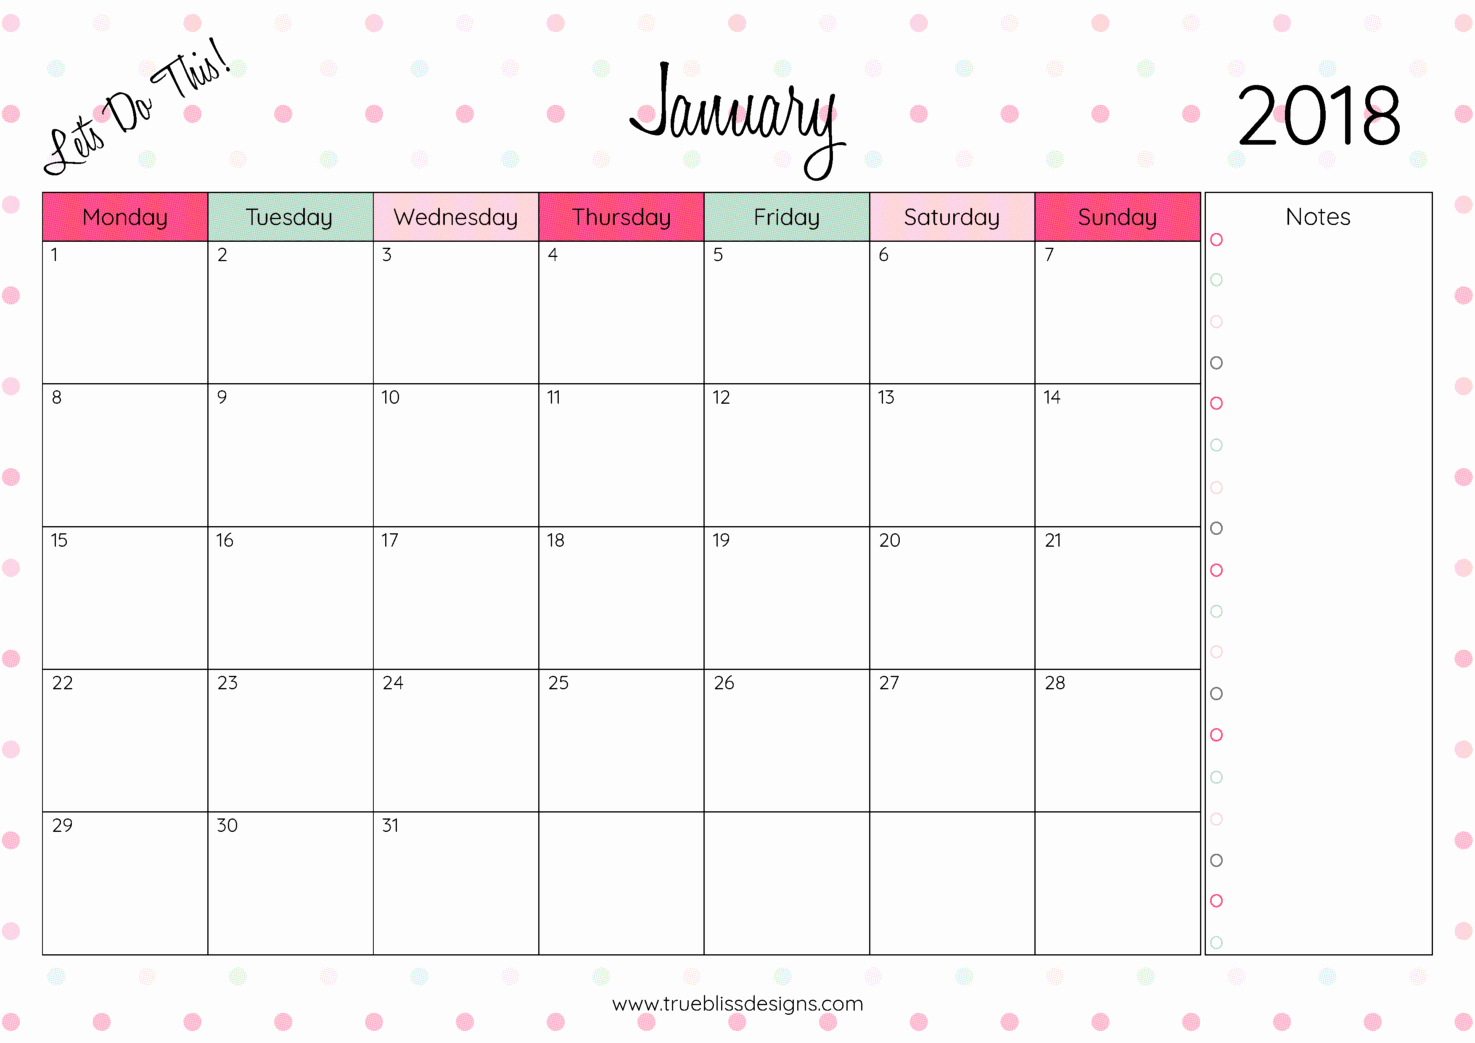 2018 Month by Month Calendar Unique Printable Monthly Calendar 2018 Printable Pages